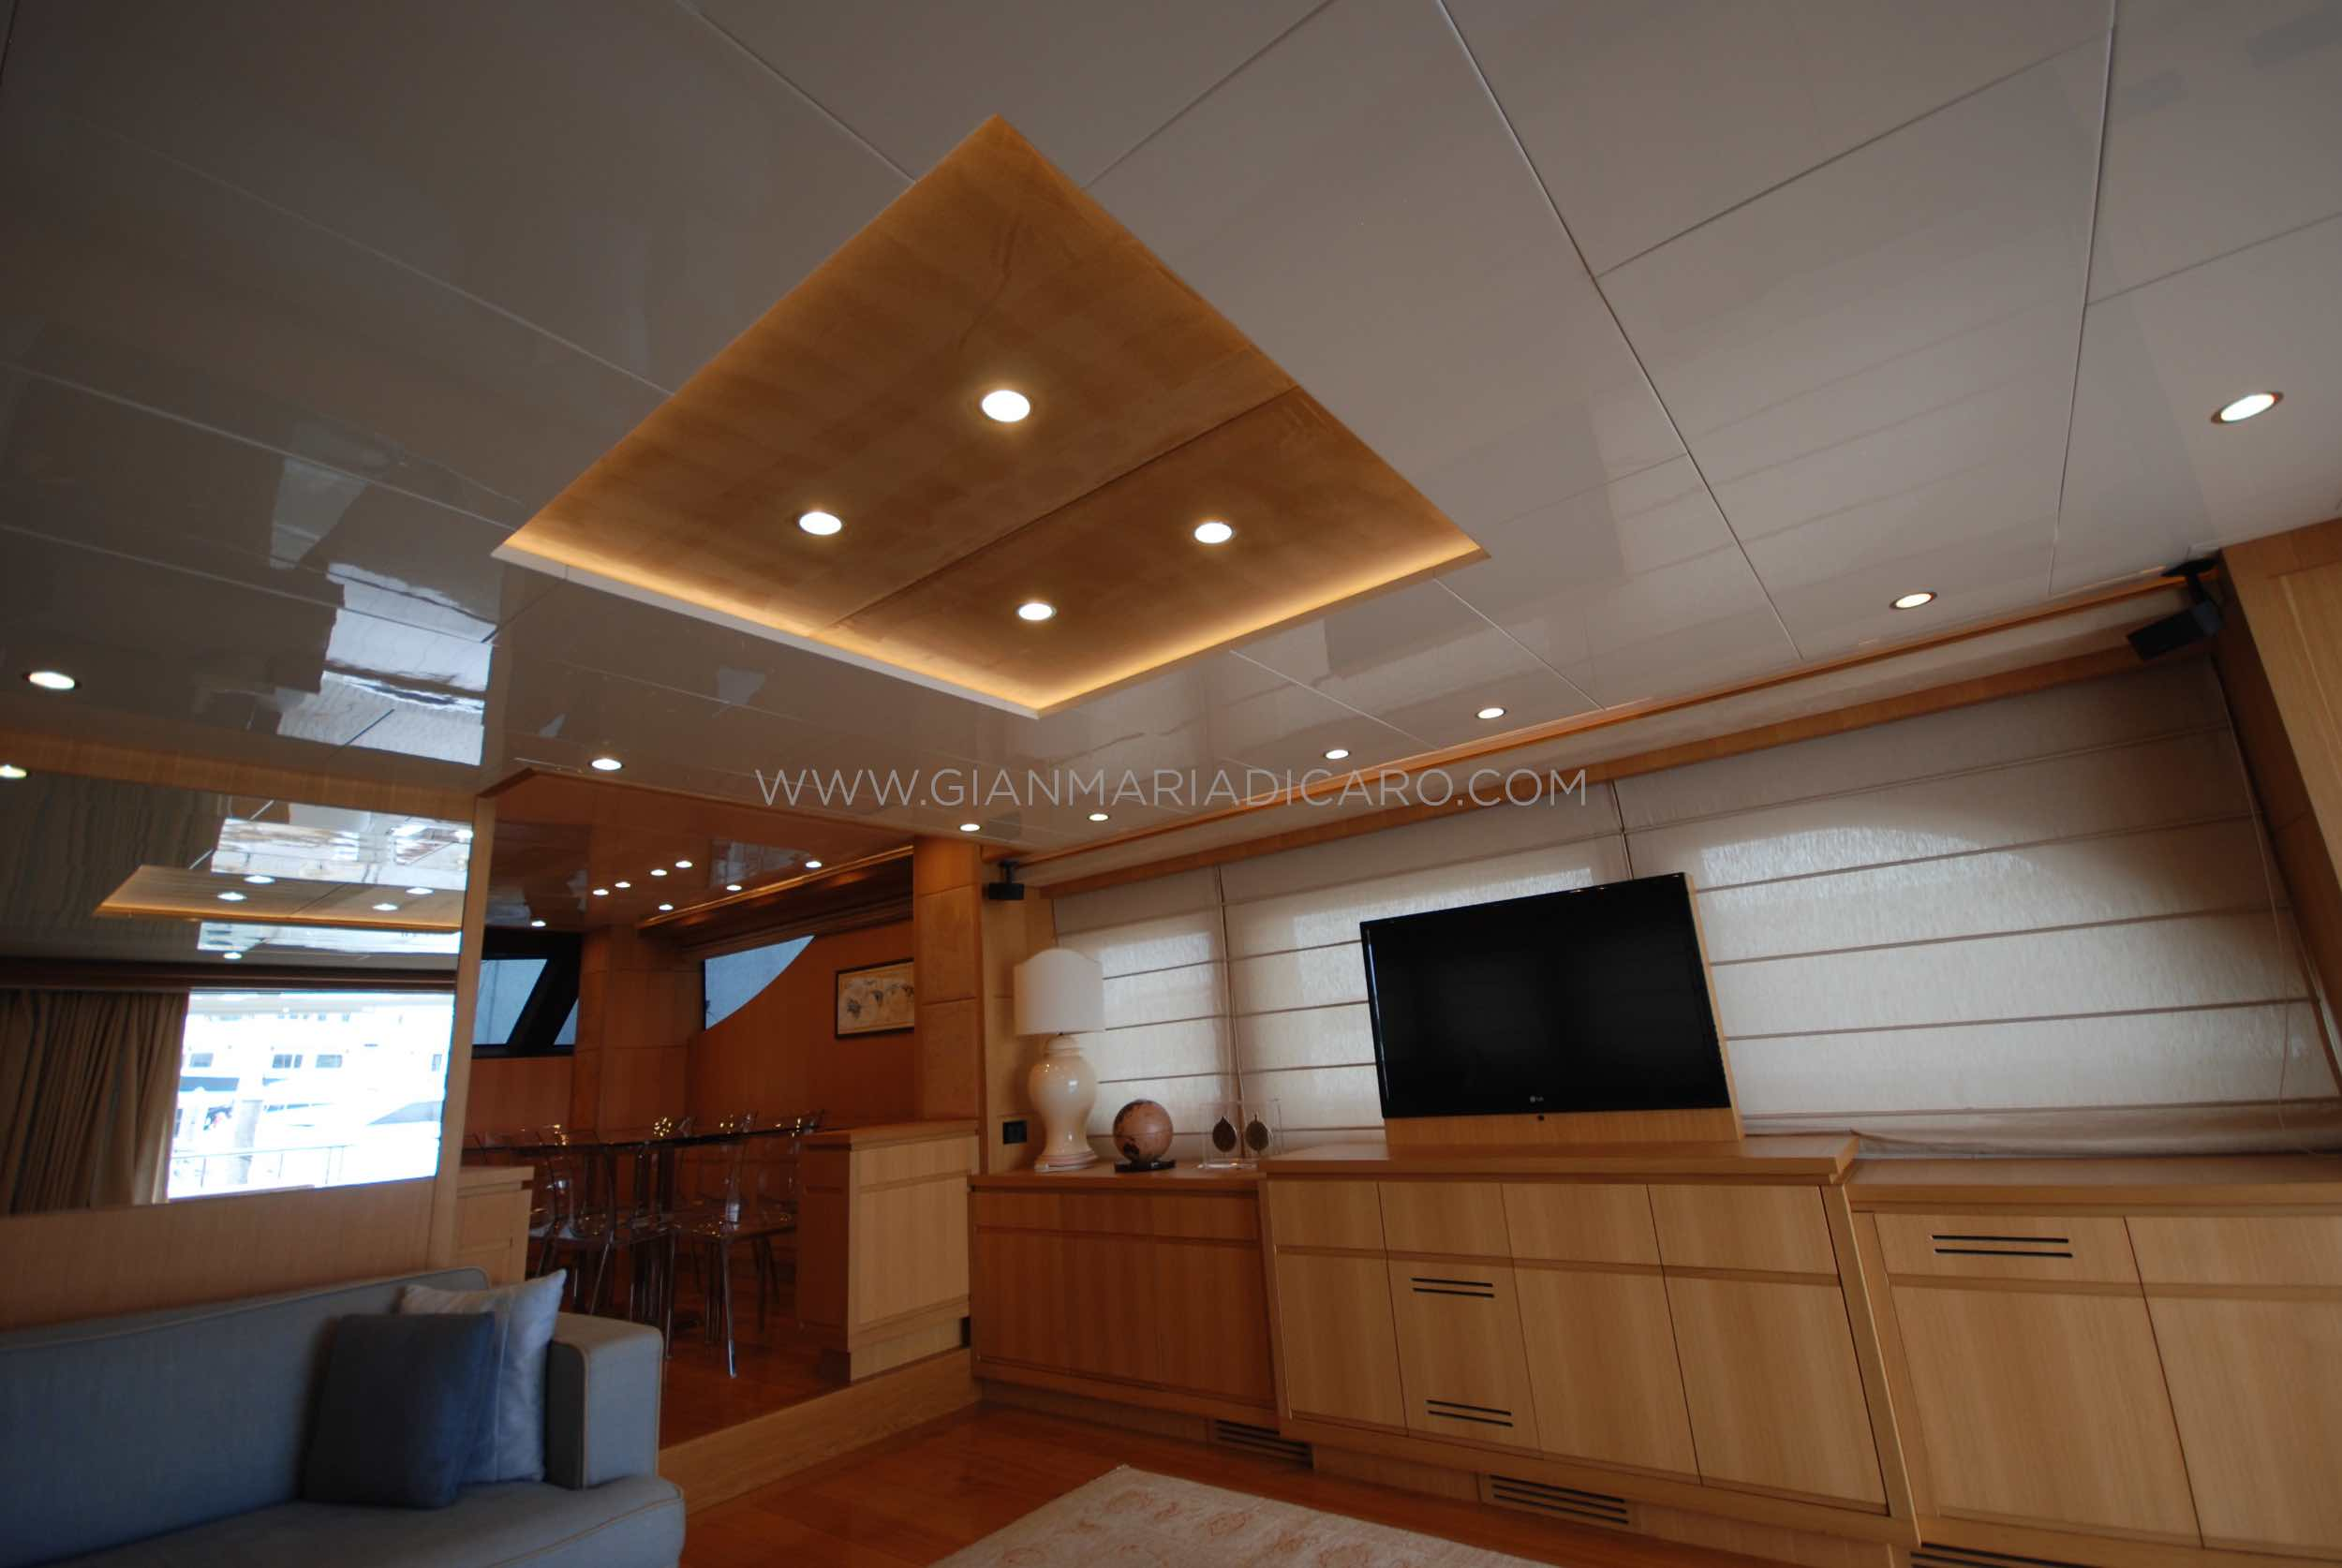 emys-yacht-22-unica-for-sale-123.jpg